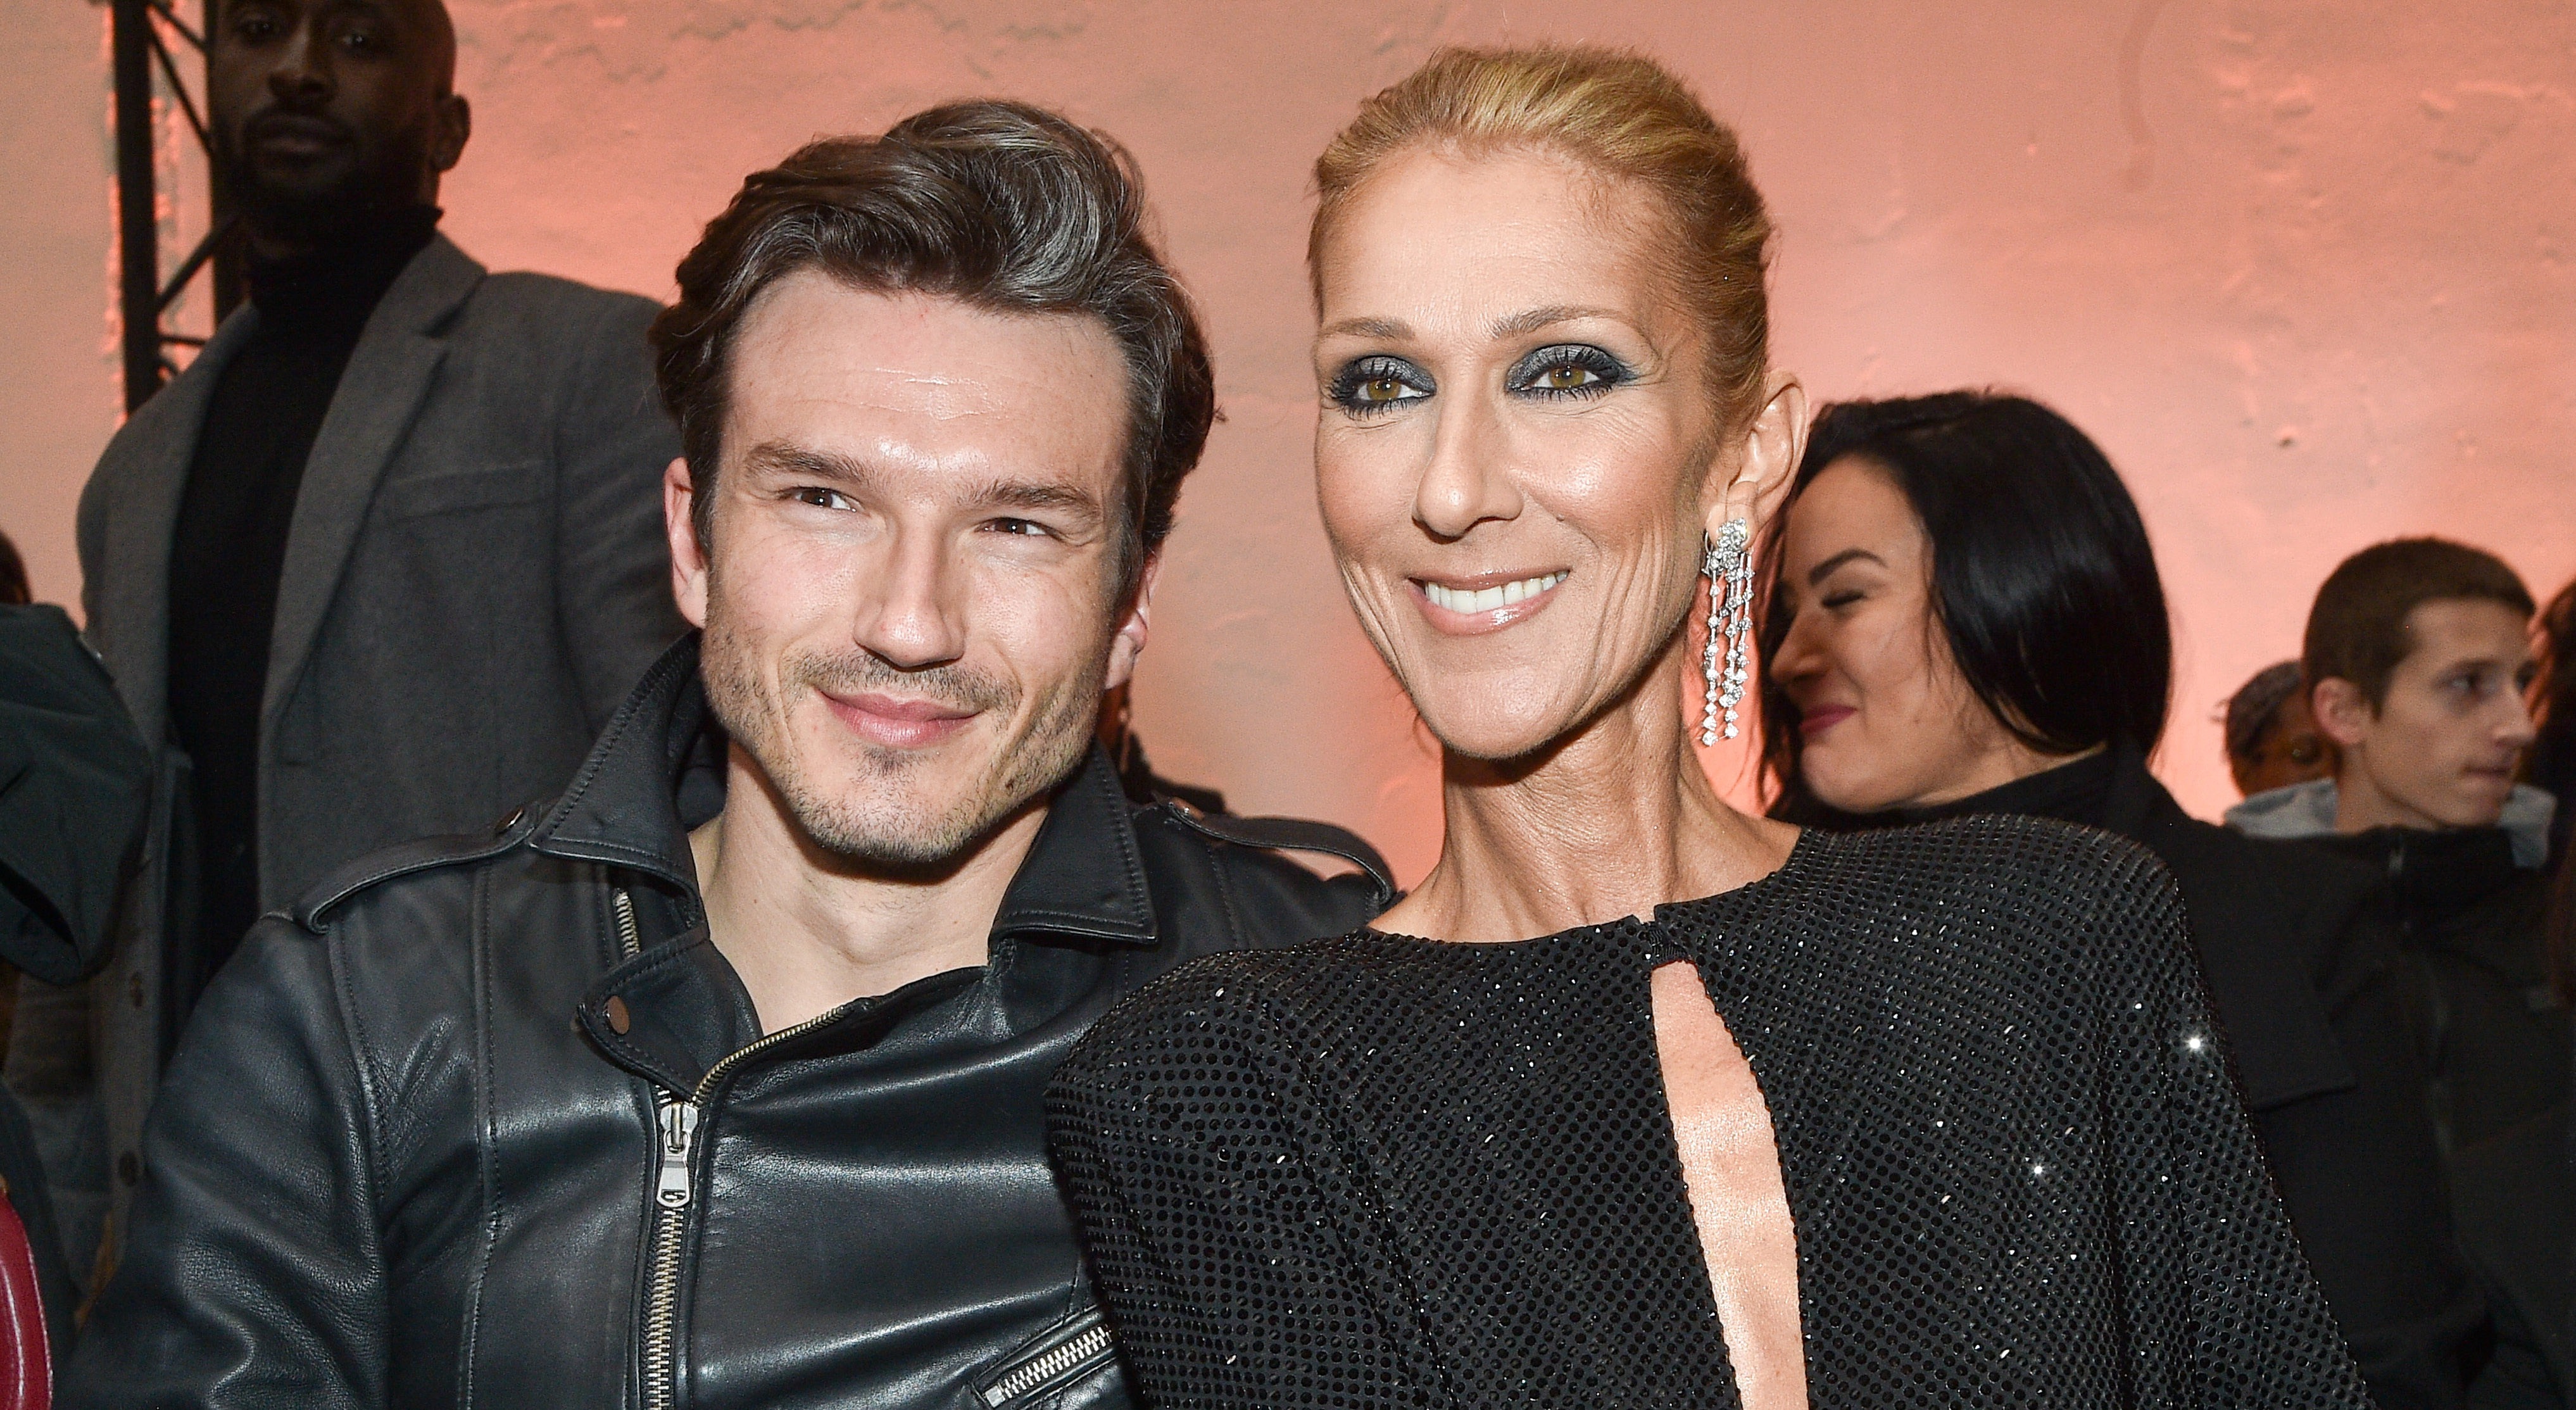 c4fd6dc718 Celine Dion Sets the Record Straight About Her Rumored New Man Pepe Muñoz    I Am Single